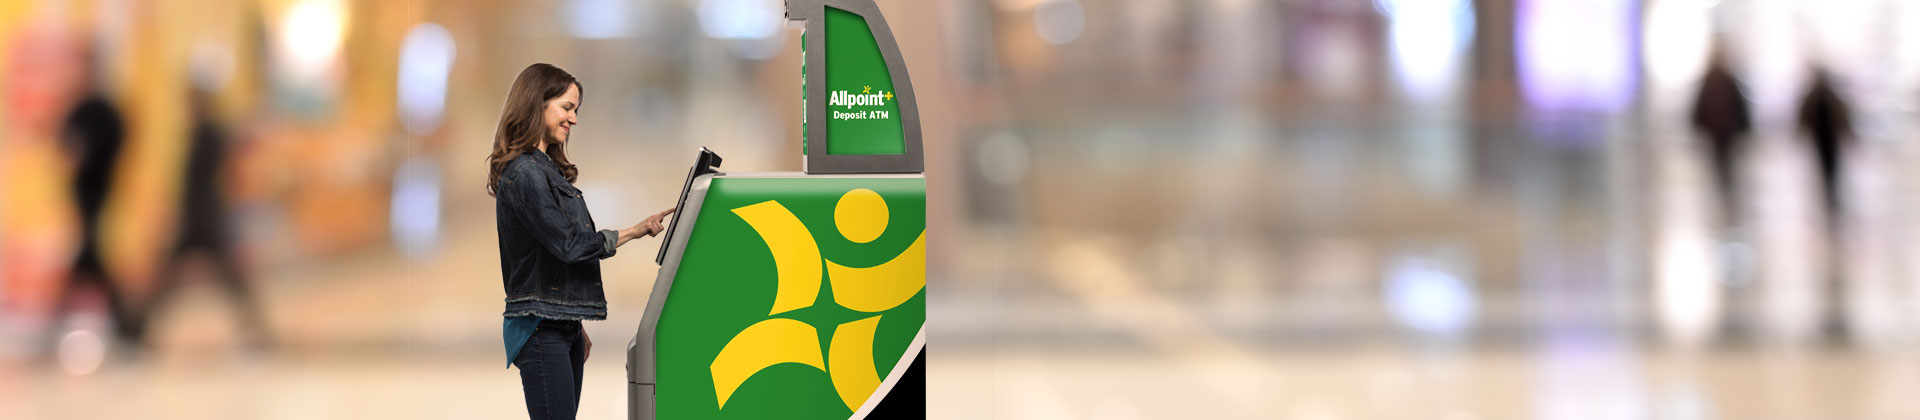 where is a allpoint atm located